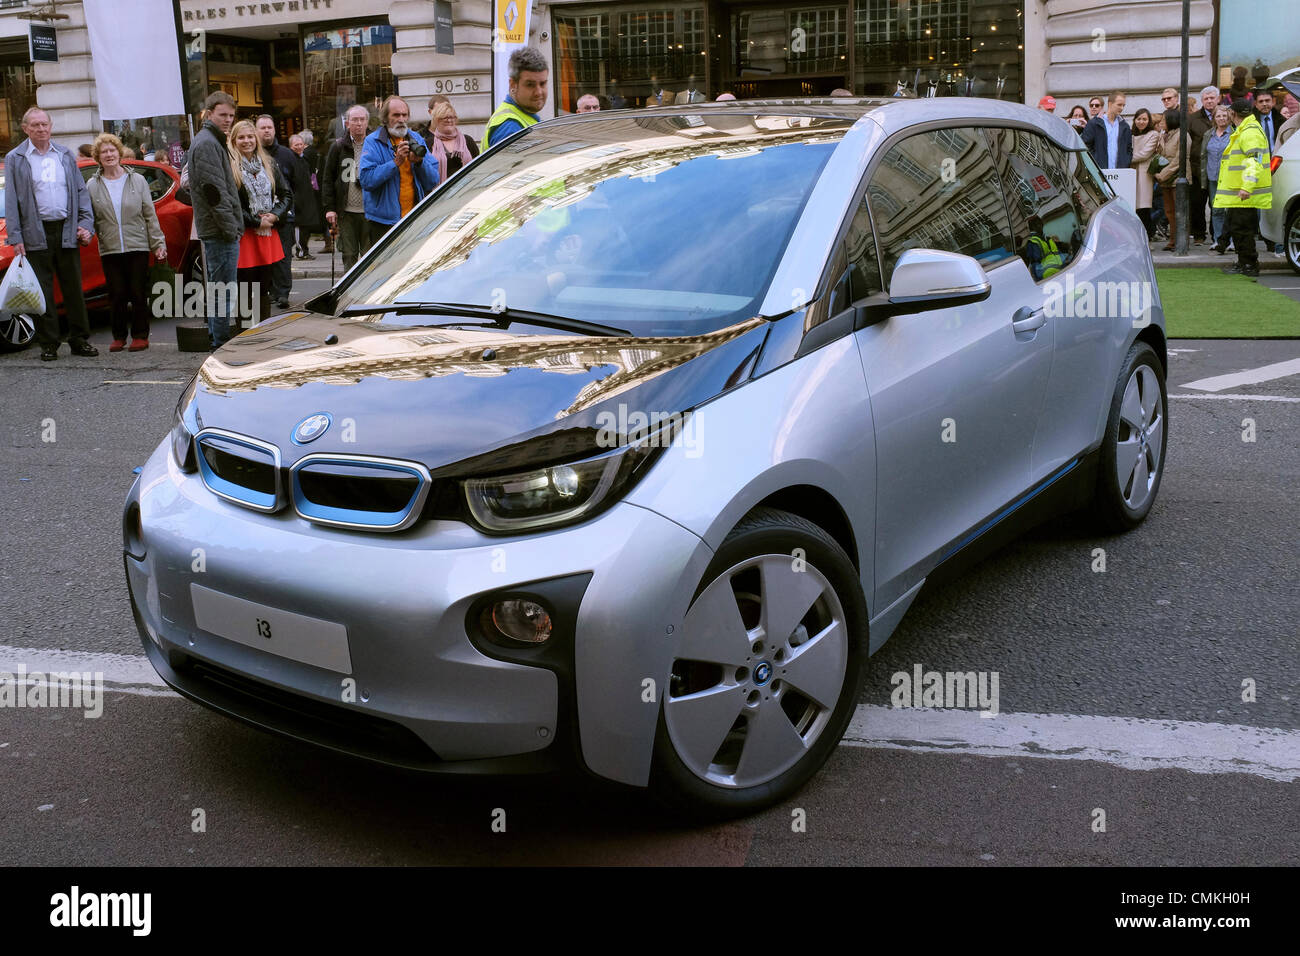 over gettyimages sudden lawsuit by loss s car slammed bmw power electric